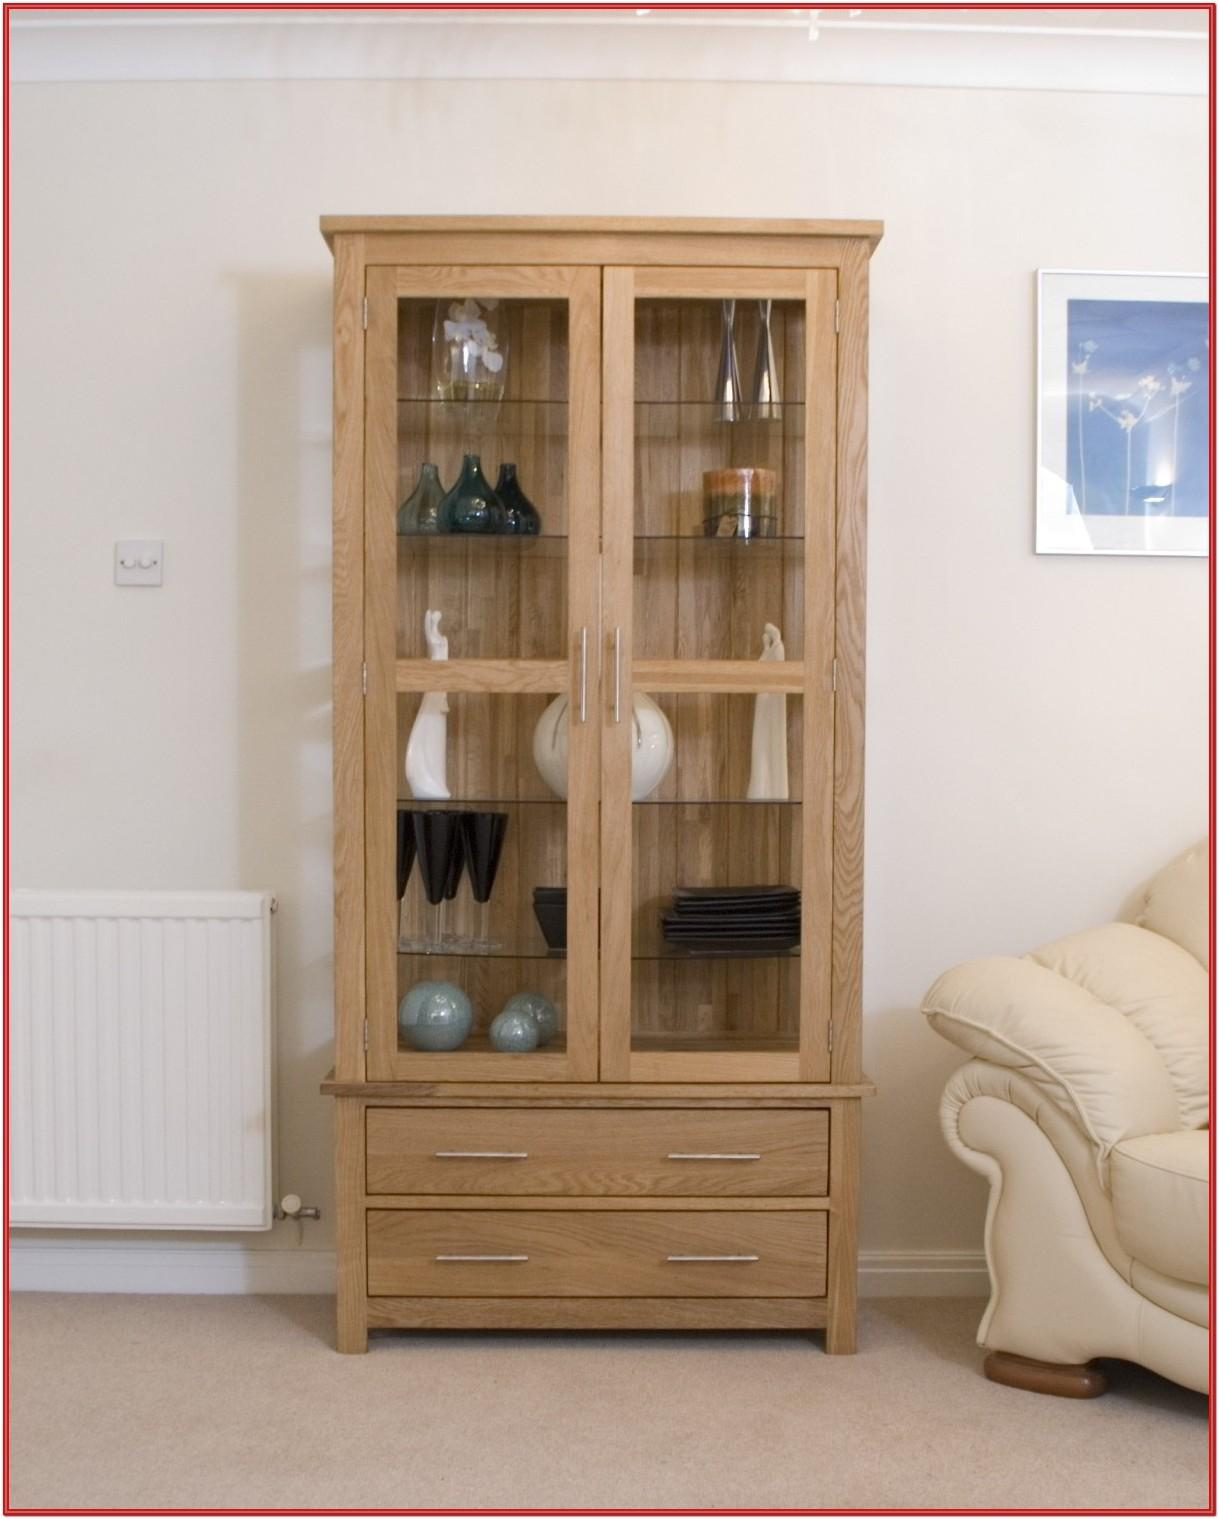 Living Room Built In Display Cabinet Ideas